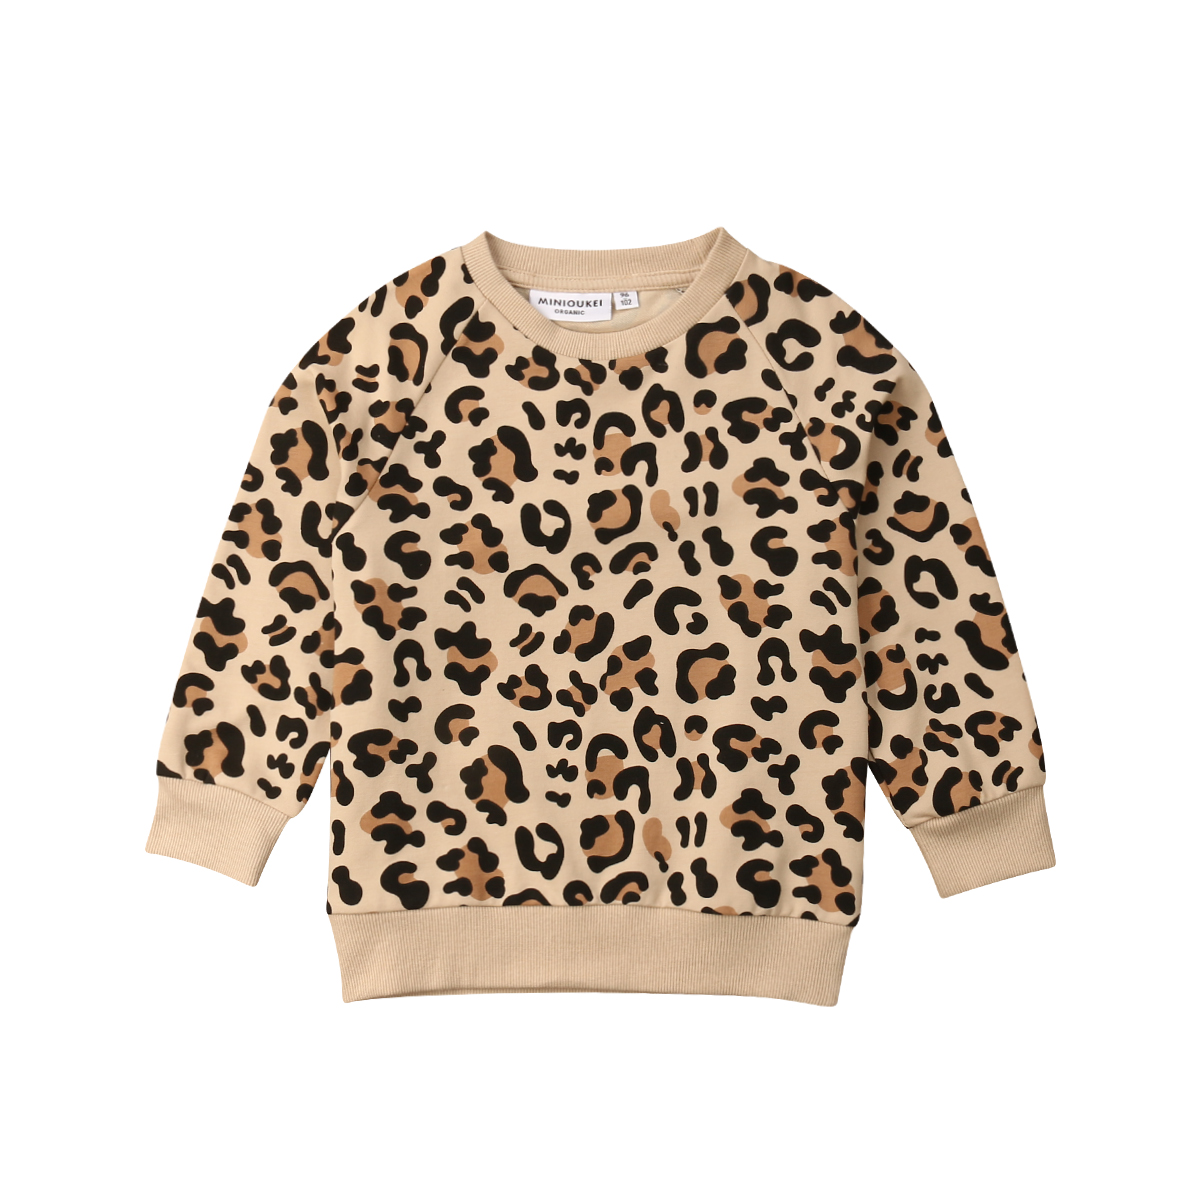 Coat Sweatshirts Toddler Baby-Girl-Boy Casual New Kid 1-7T Top Long-Sleeve Leopard Arrivels